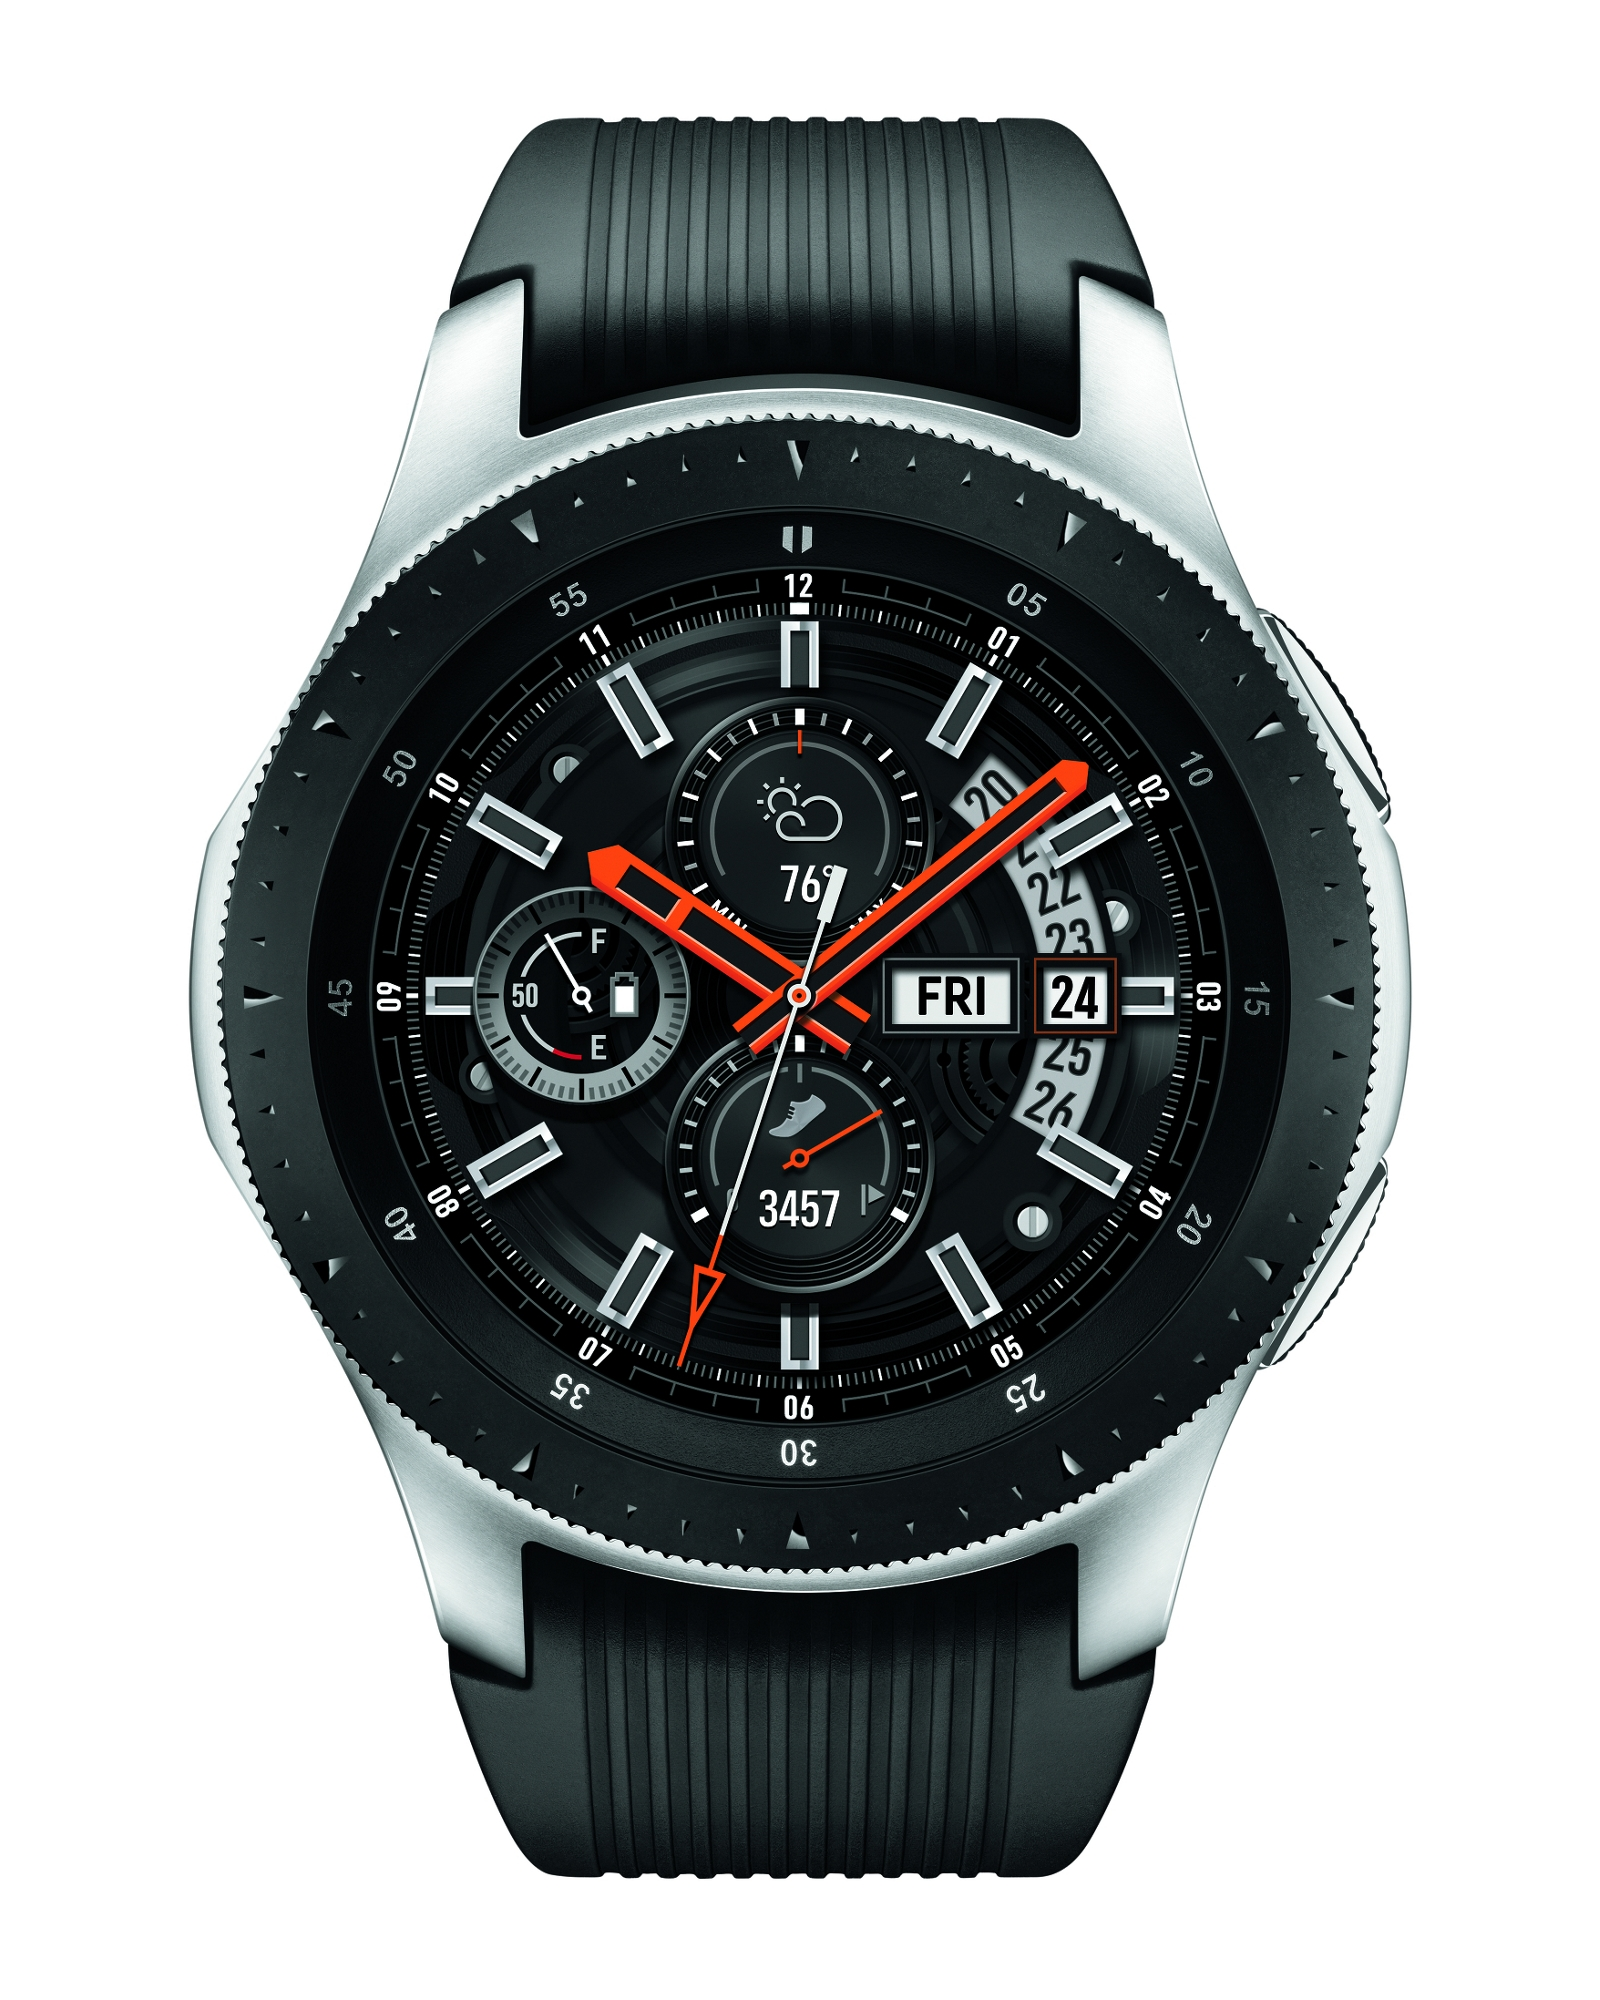 competitive price 9689e 5dcd1 Galaxy Watch (46mm) Silver (Bluetooth) Wearables - SM-R800NZSAXAR   Samsung  US